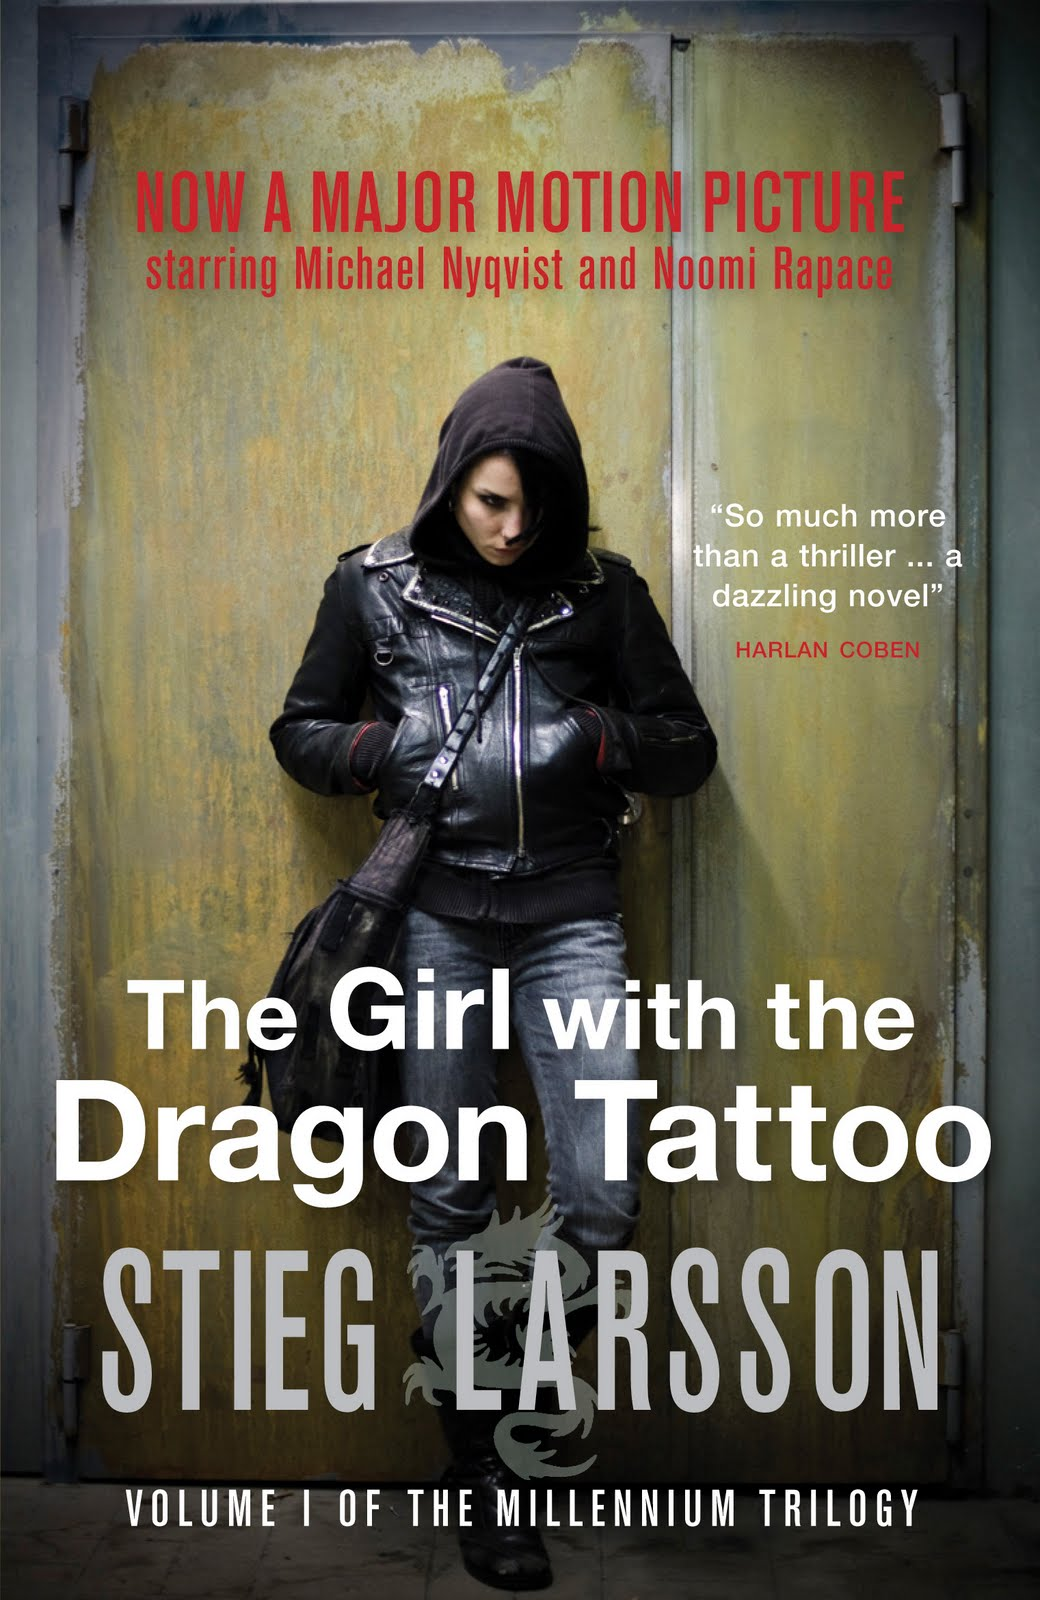 The Girl with the Dragon Tattoo Book